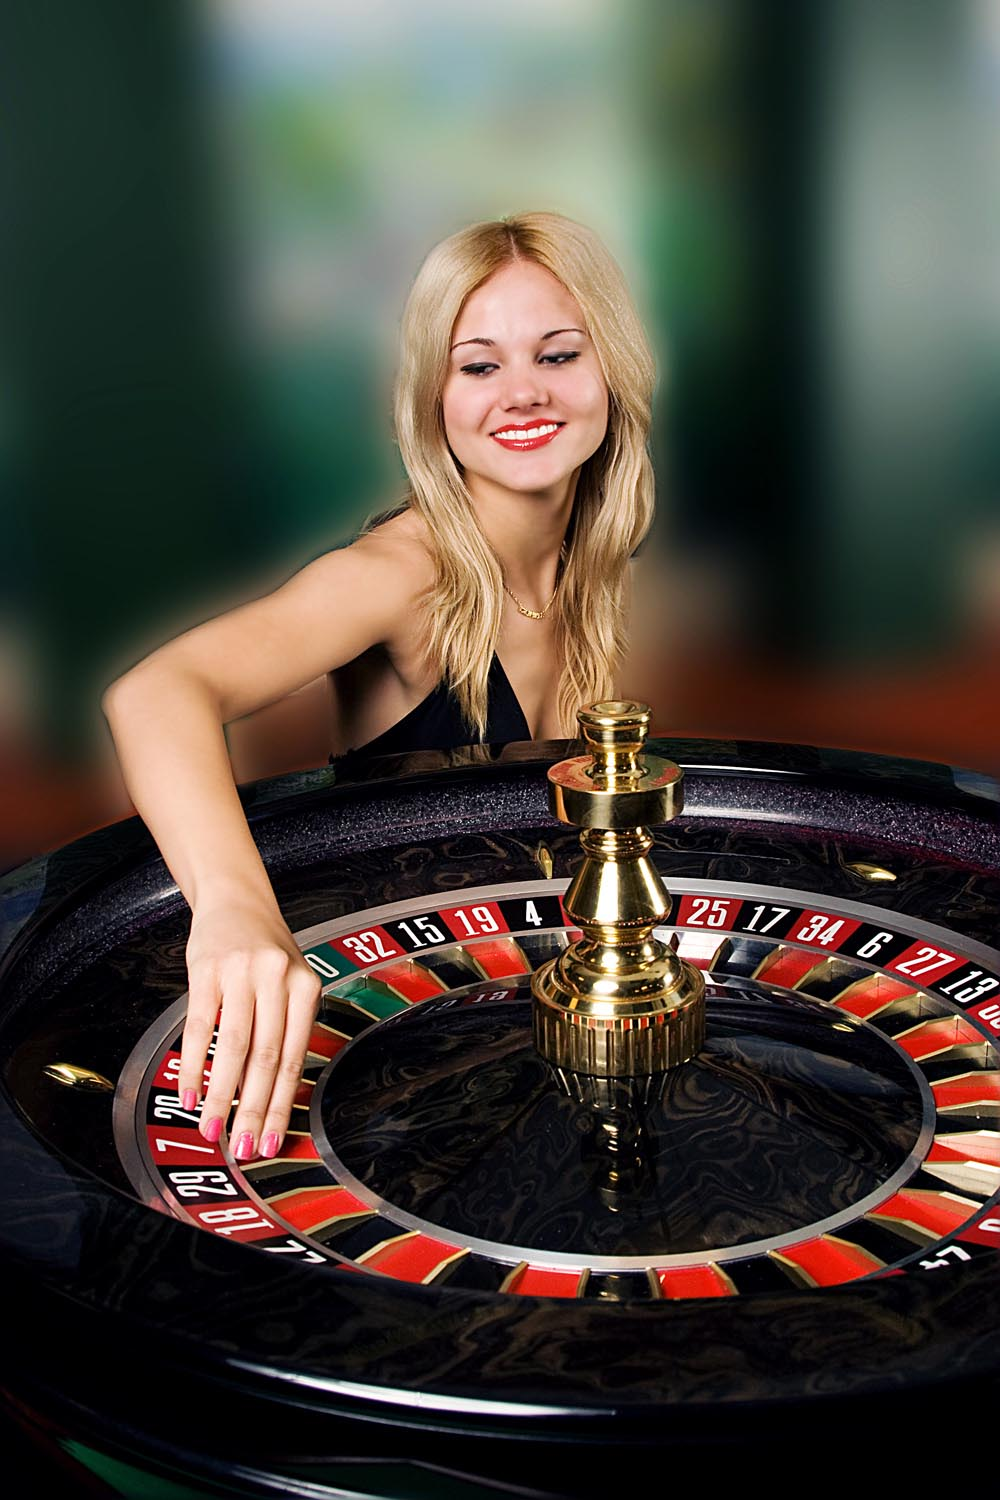 buy online casino slizzing hot